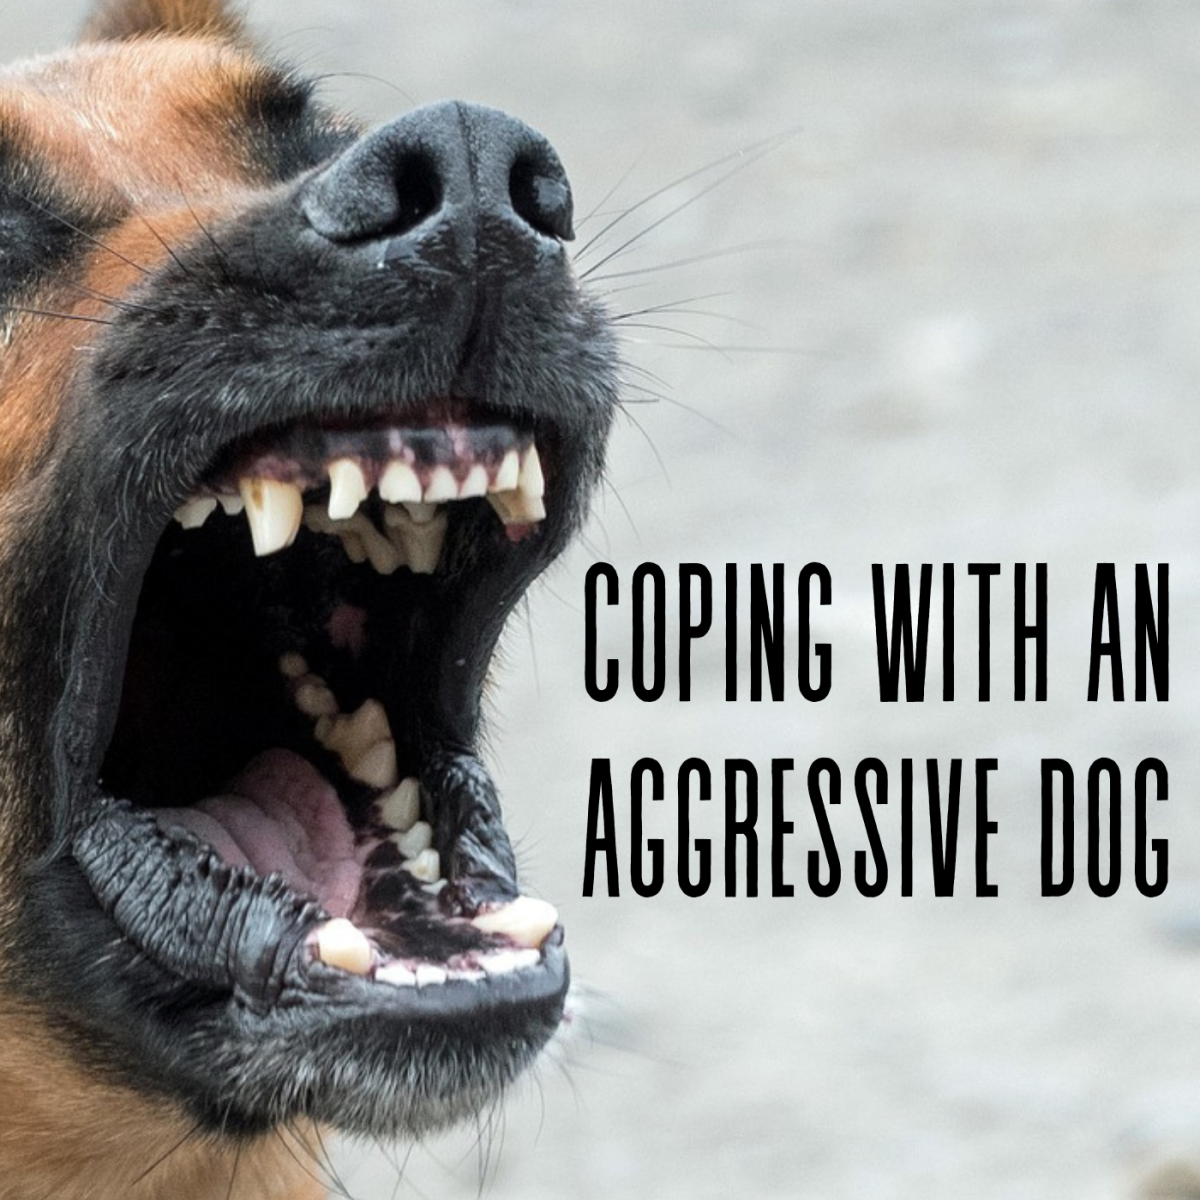 Does your dog have aggression issues, like fear aggression? In this article, I share how I have tried to manage my dog's aggression.